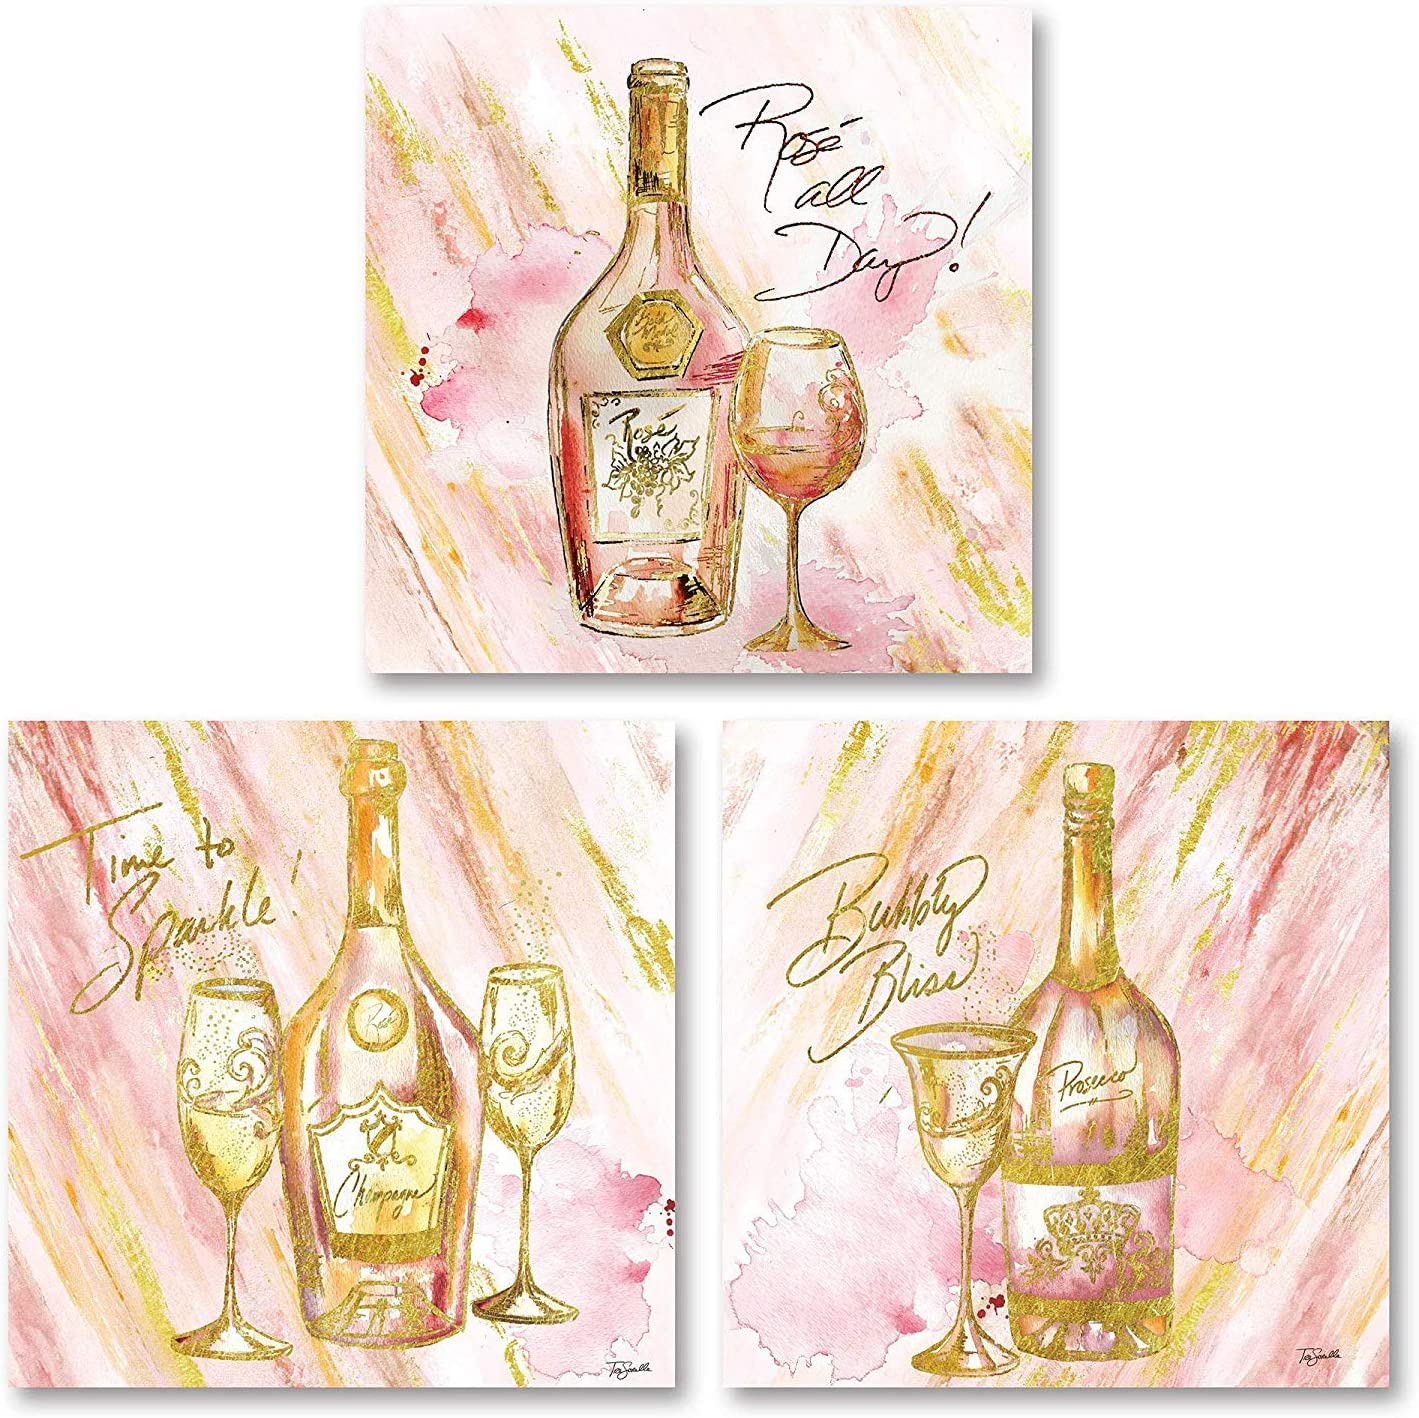 The Studio Resource, Inc. Pink Gold Rose All Day' 'Time to Sparkle' Bubbly Bliss Wine Alcohol Set; Perfect Bar Kitchen Decor; 3-12x12 Paper Poster Prints